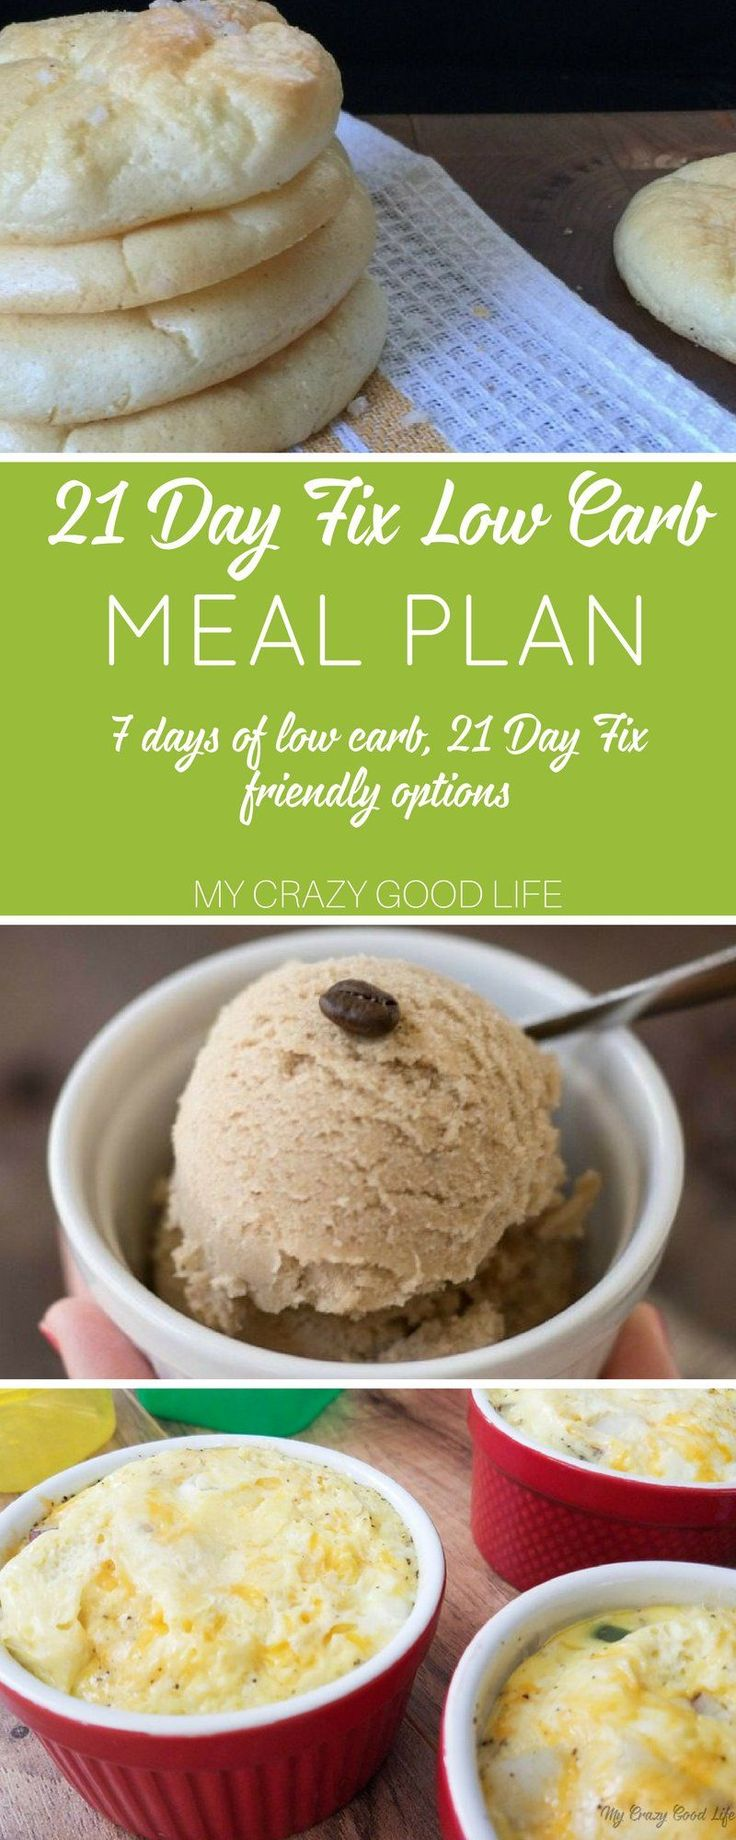 With a 21 Day Fix low carb meal plan you can focus on two types of healthy eating. If you are avoiding carbs and rocking 21 Day Fix this one is for you!  via @bludlum